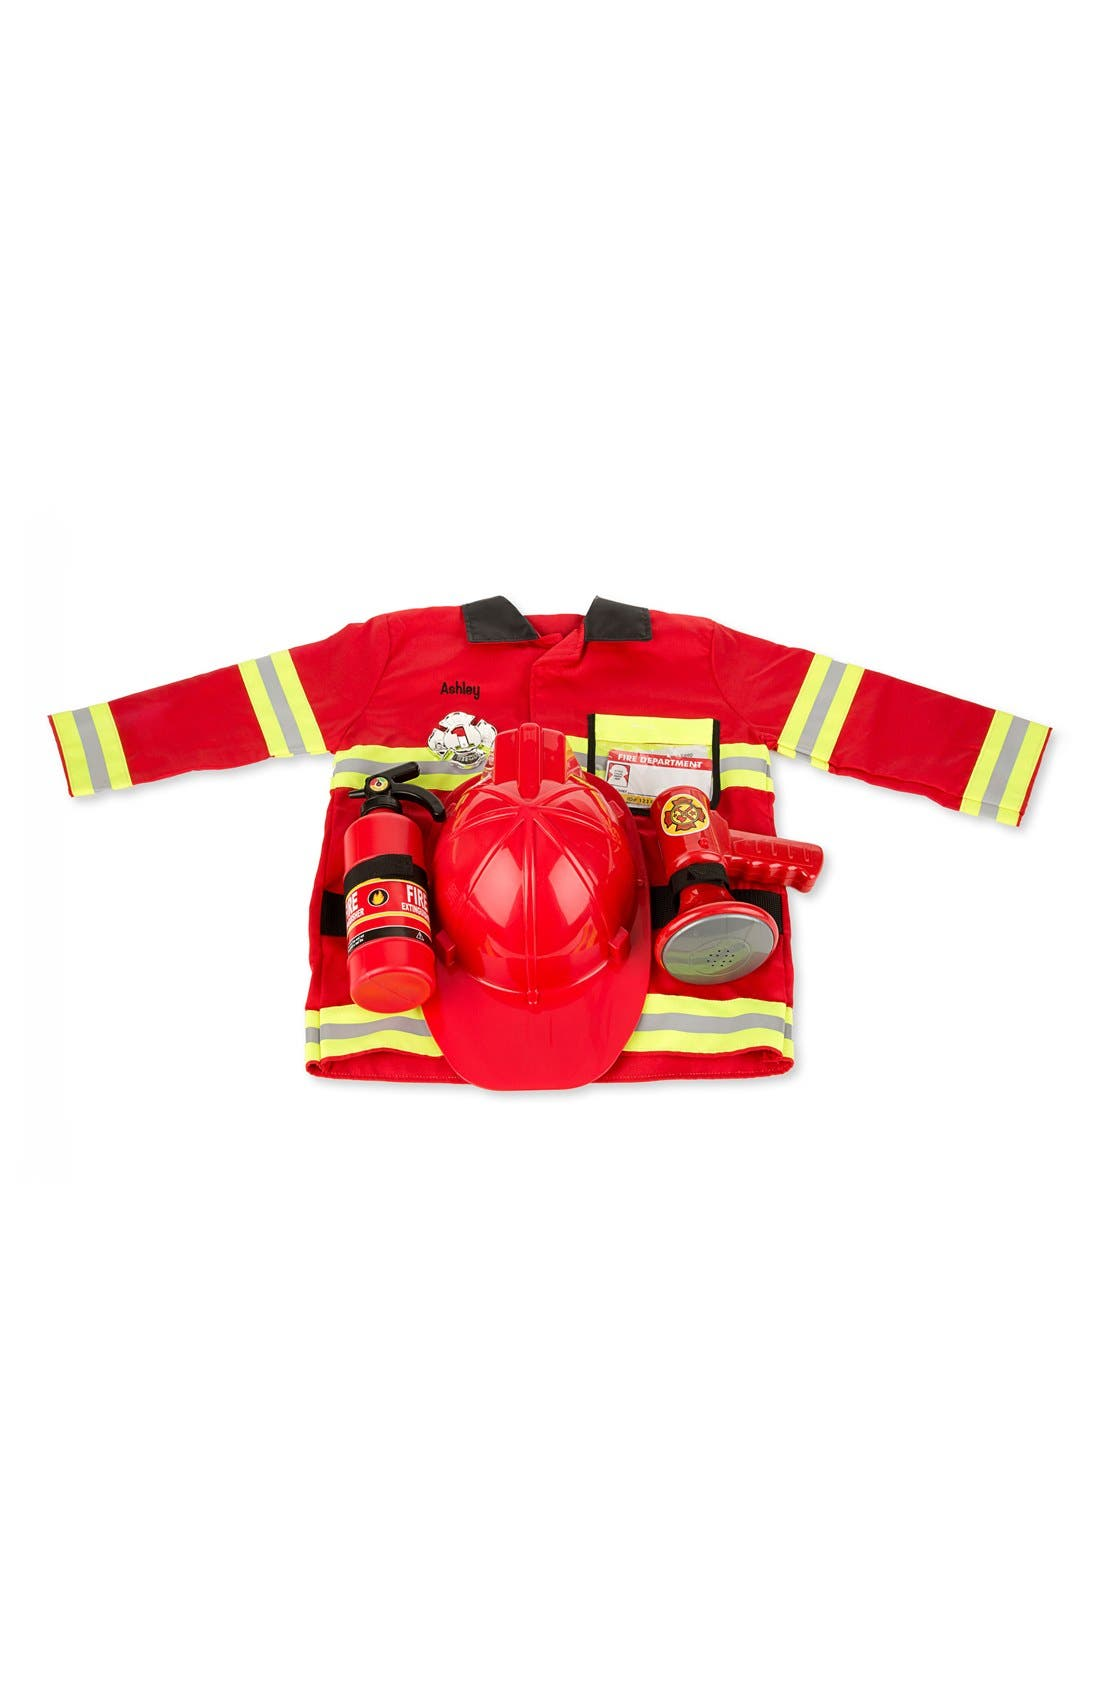 Personalized Fire Chief Costume Set,                         Main,                         color, RED